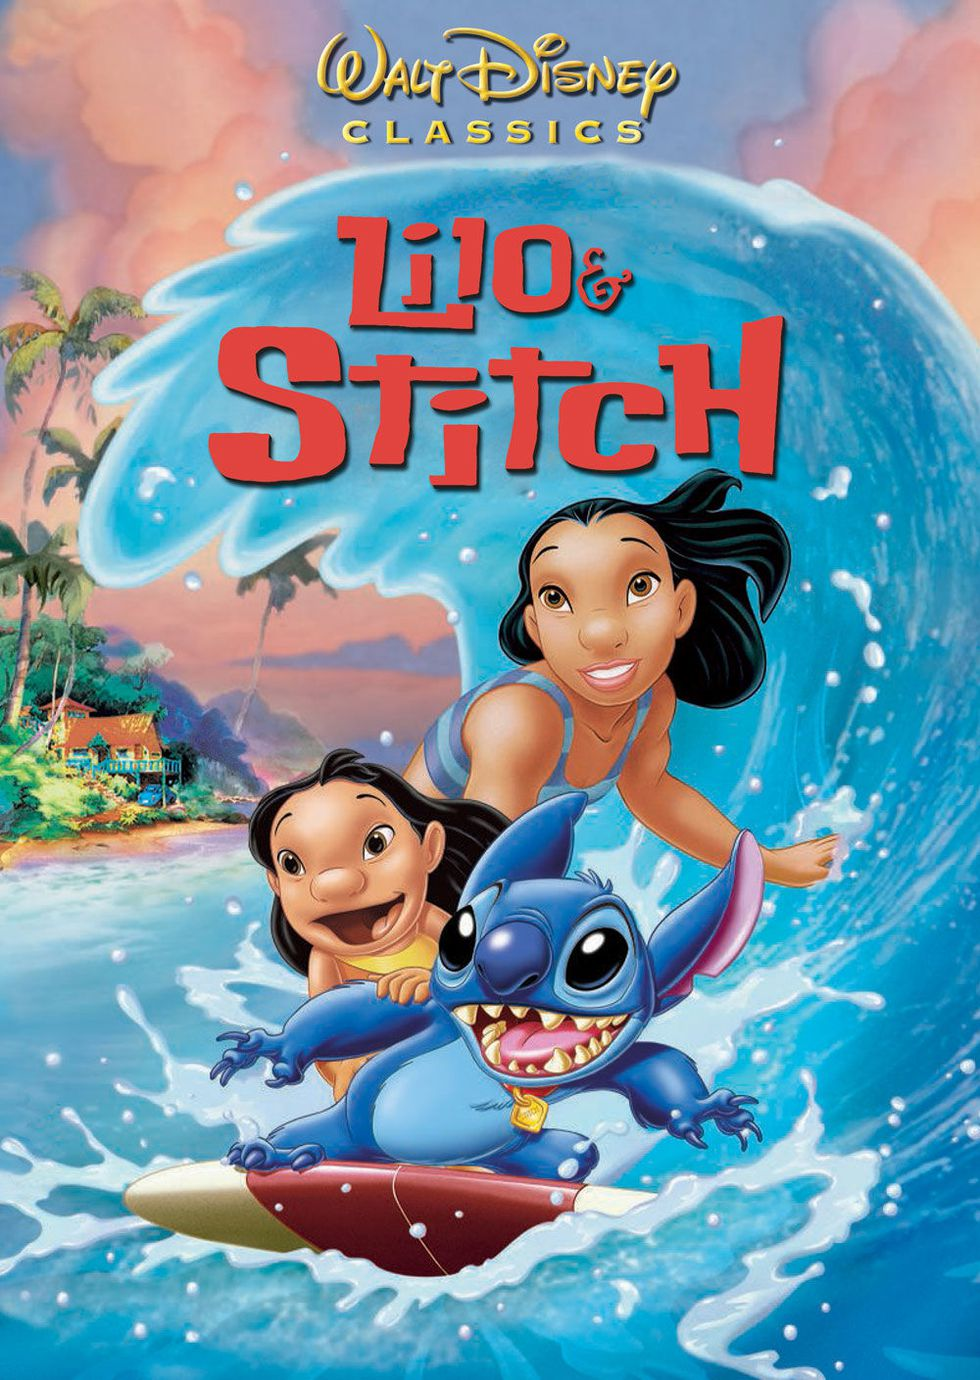 lilo-and-stitch-movie-poster-1538602091.jpg